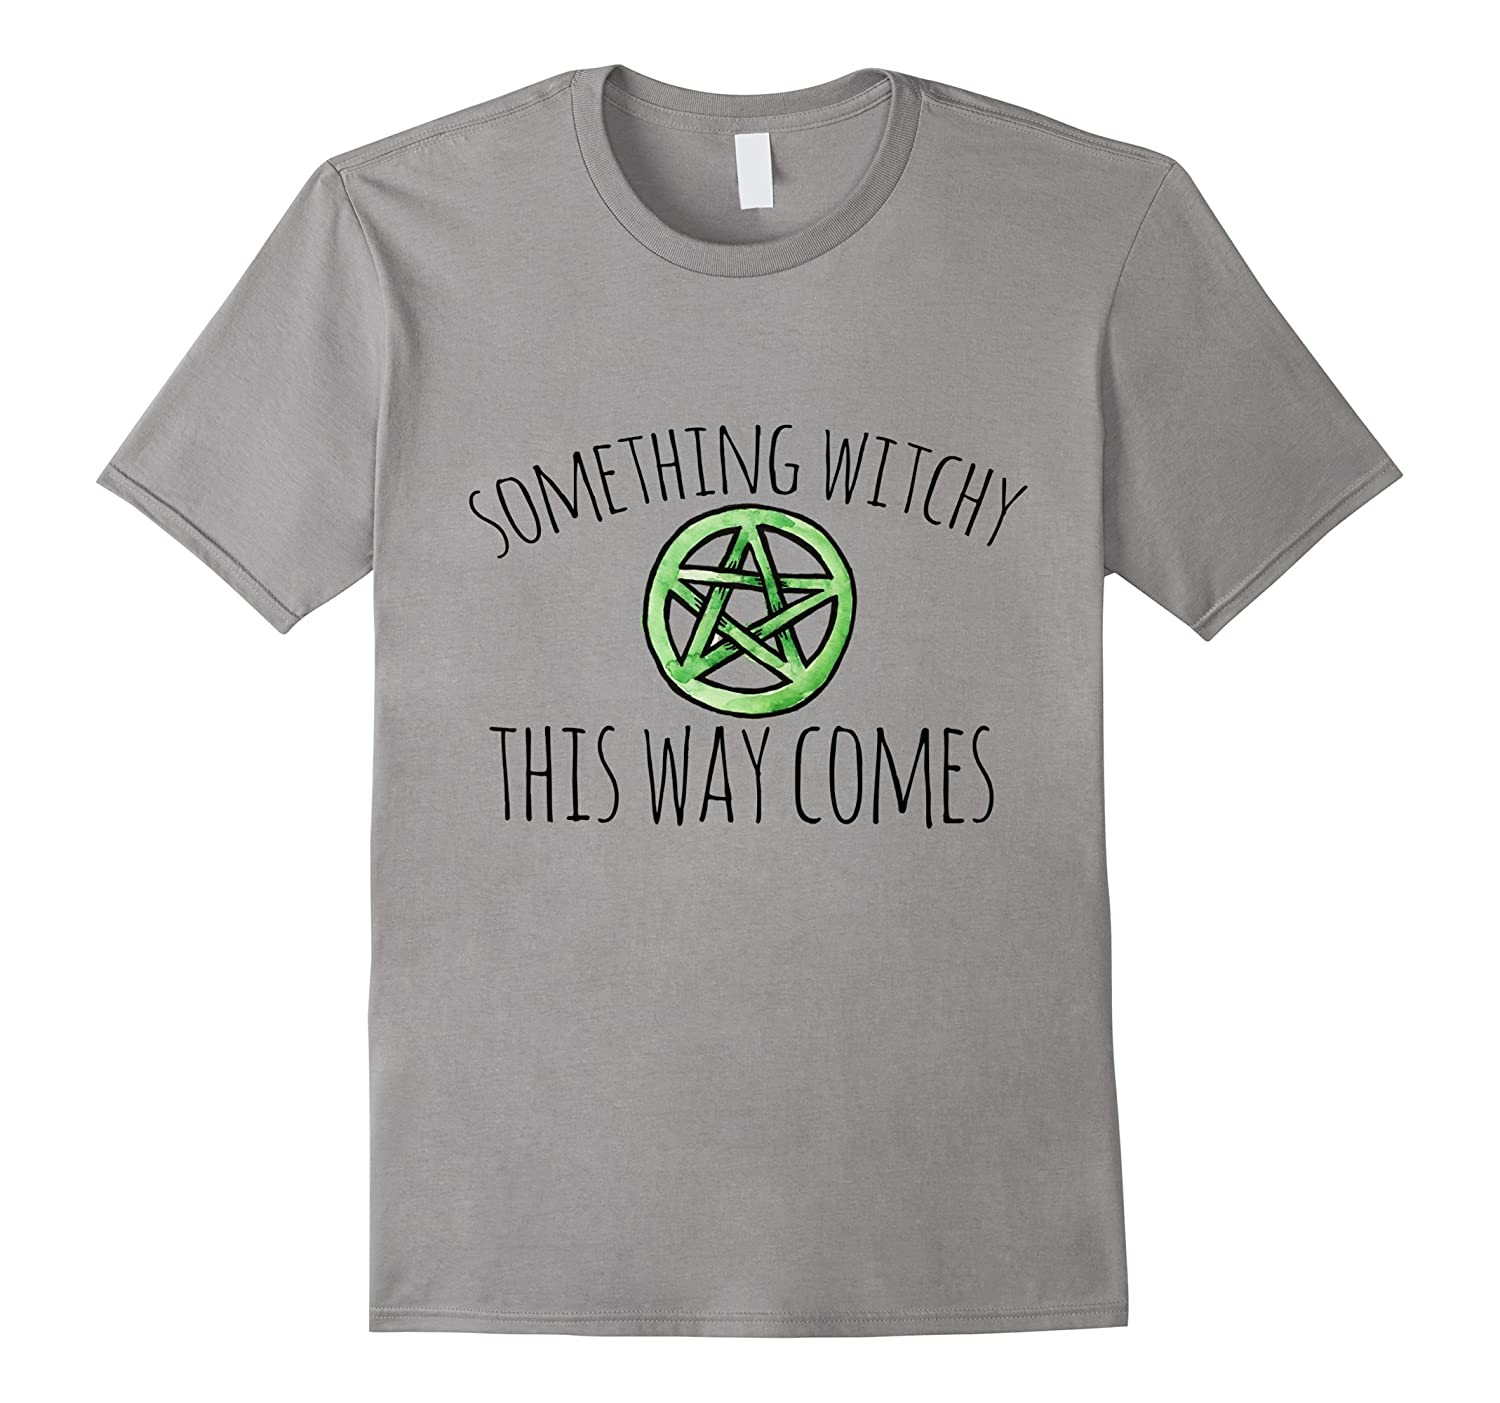 Something Witchy This Way Comes T Shirt Pagan Wiccan Tee Pl Polozatee